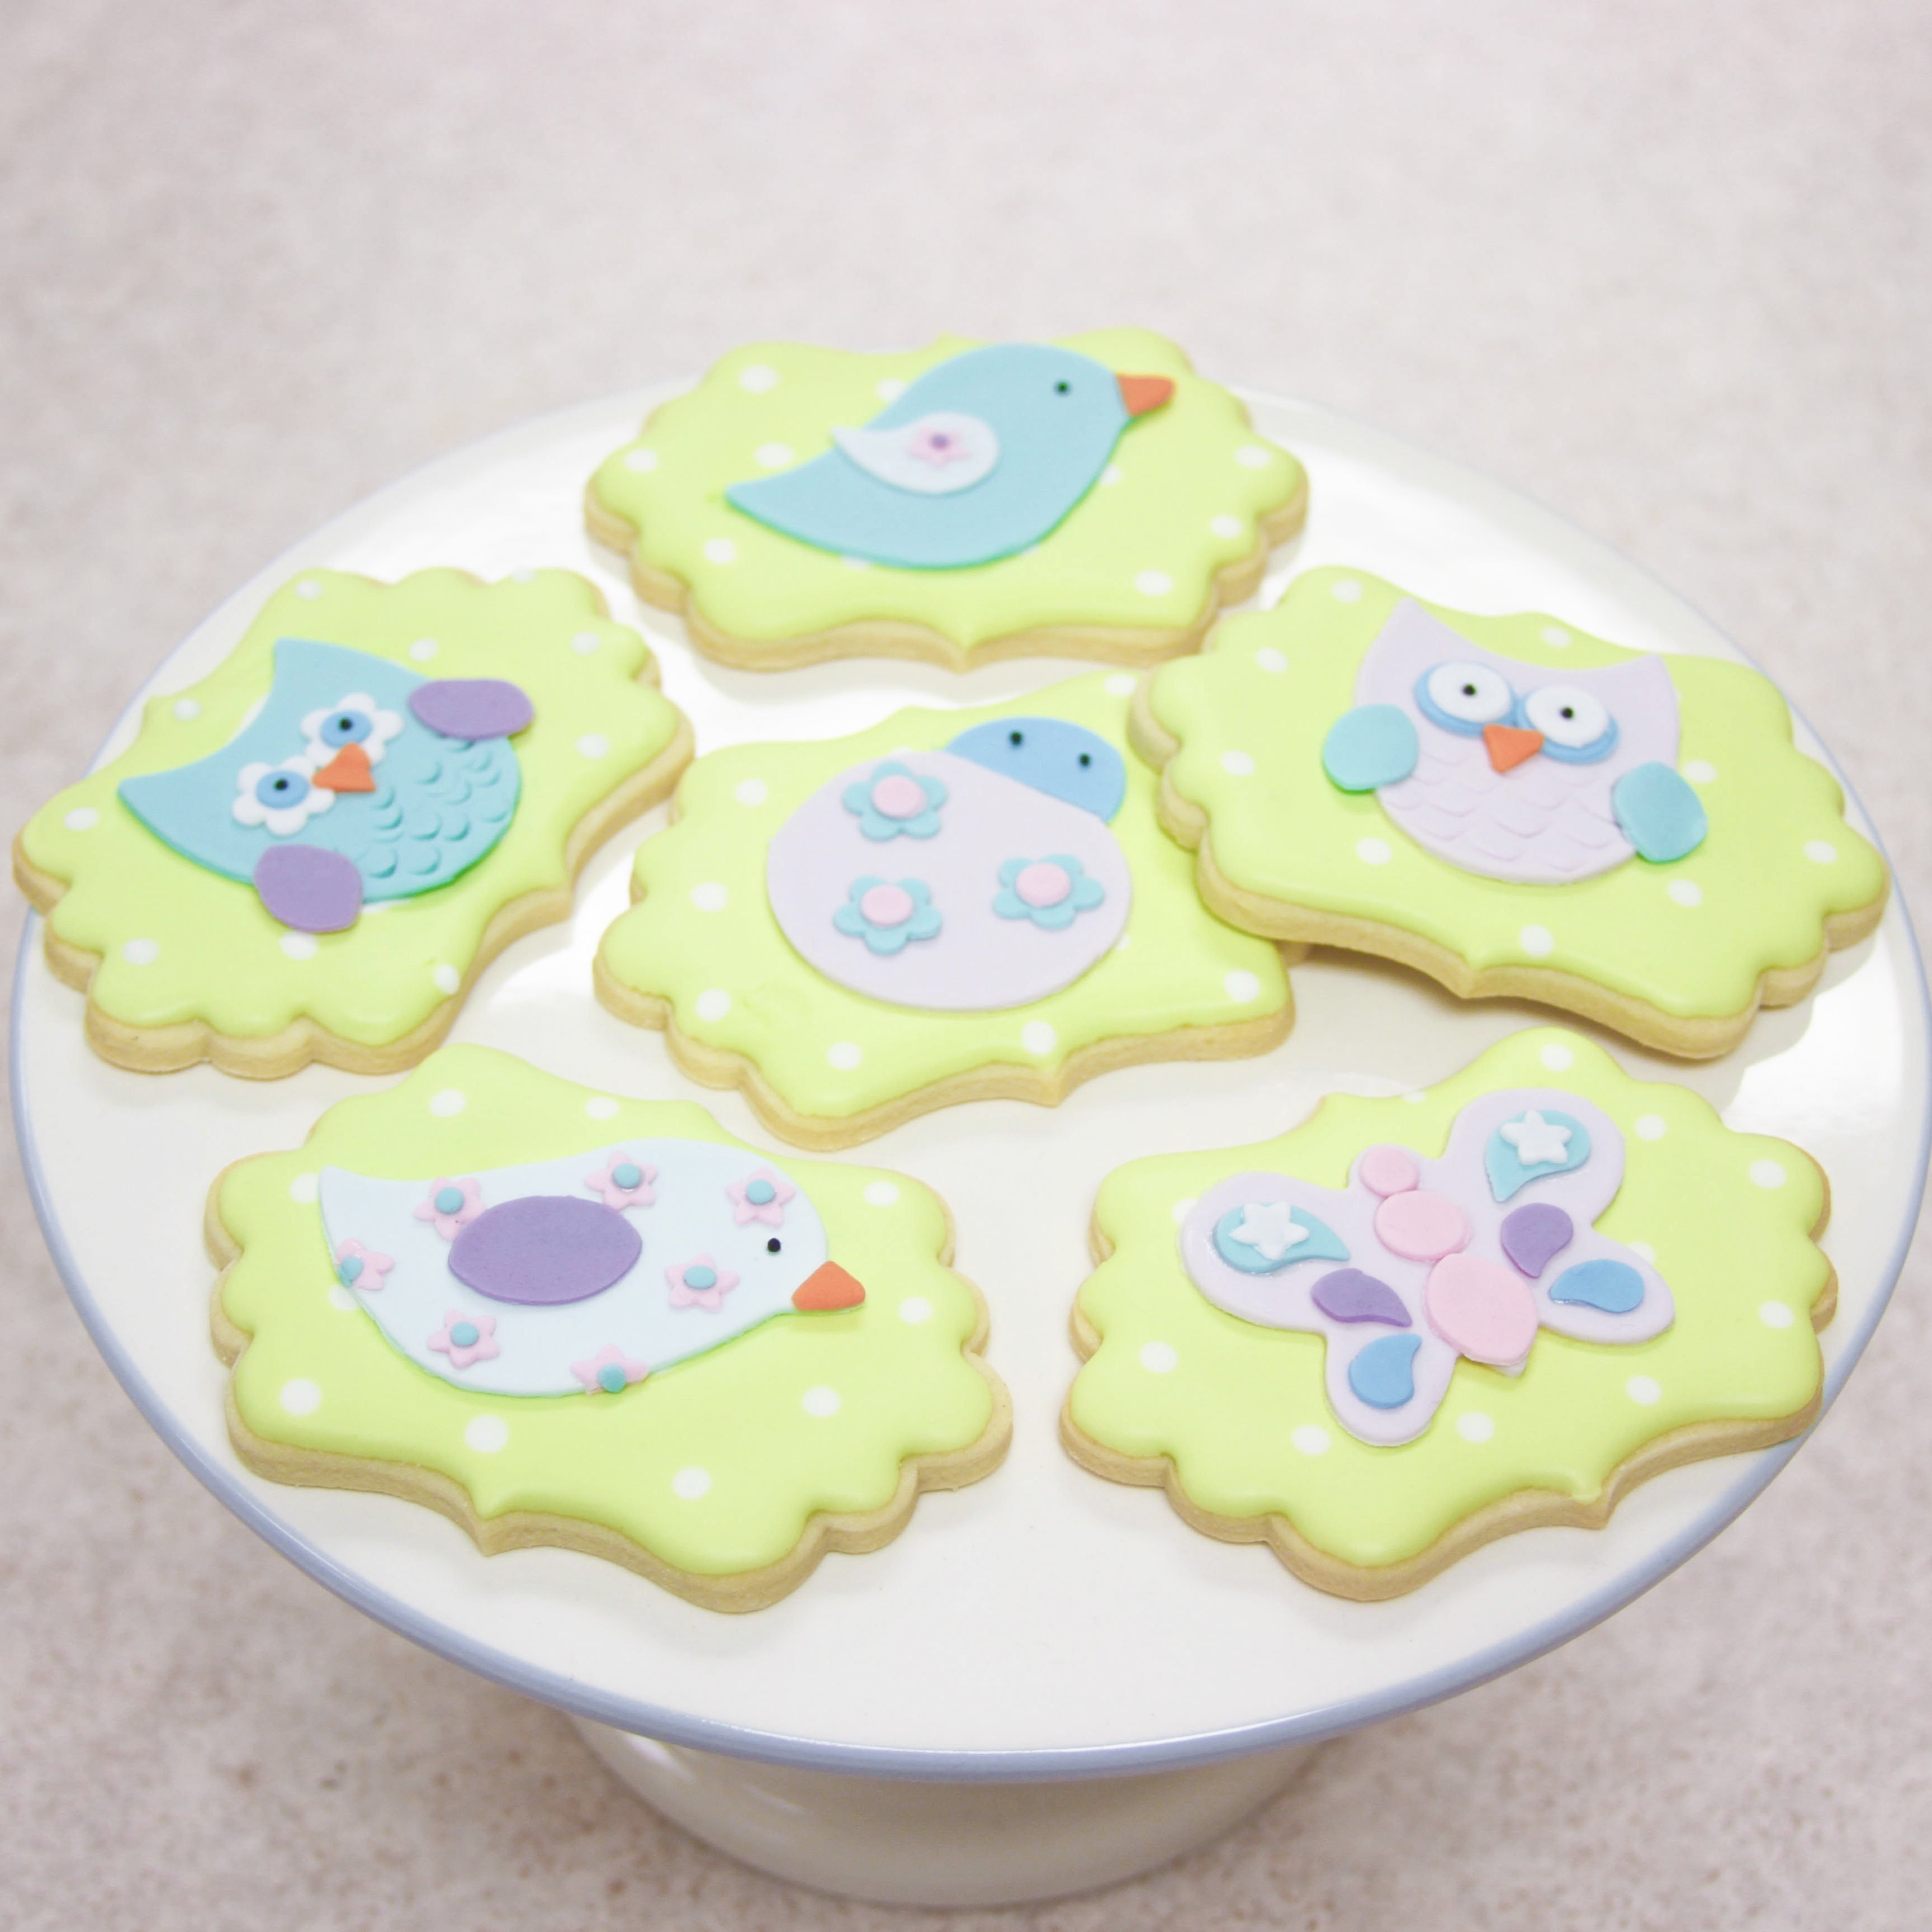 Cute Woodland Animal Cookies